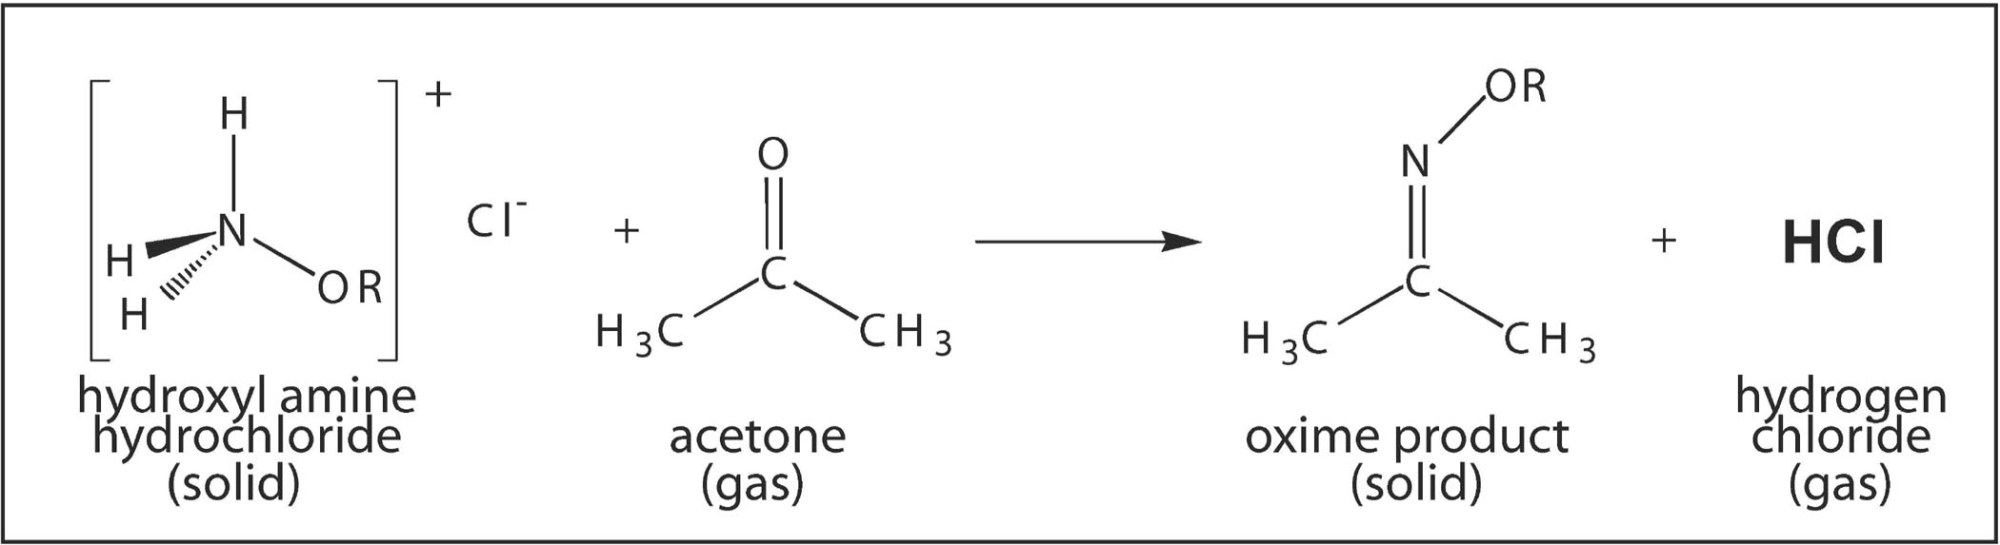 hight resolution of acetone detection method chemical conversion to hydrogen chloride hcl gas